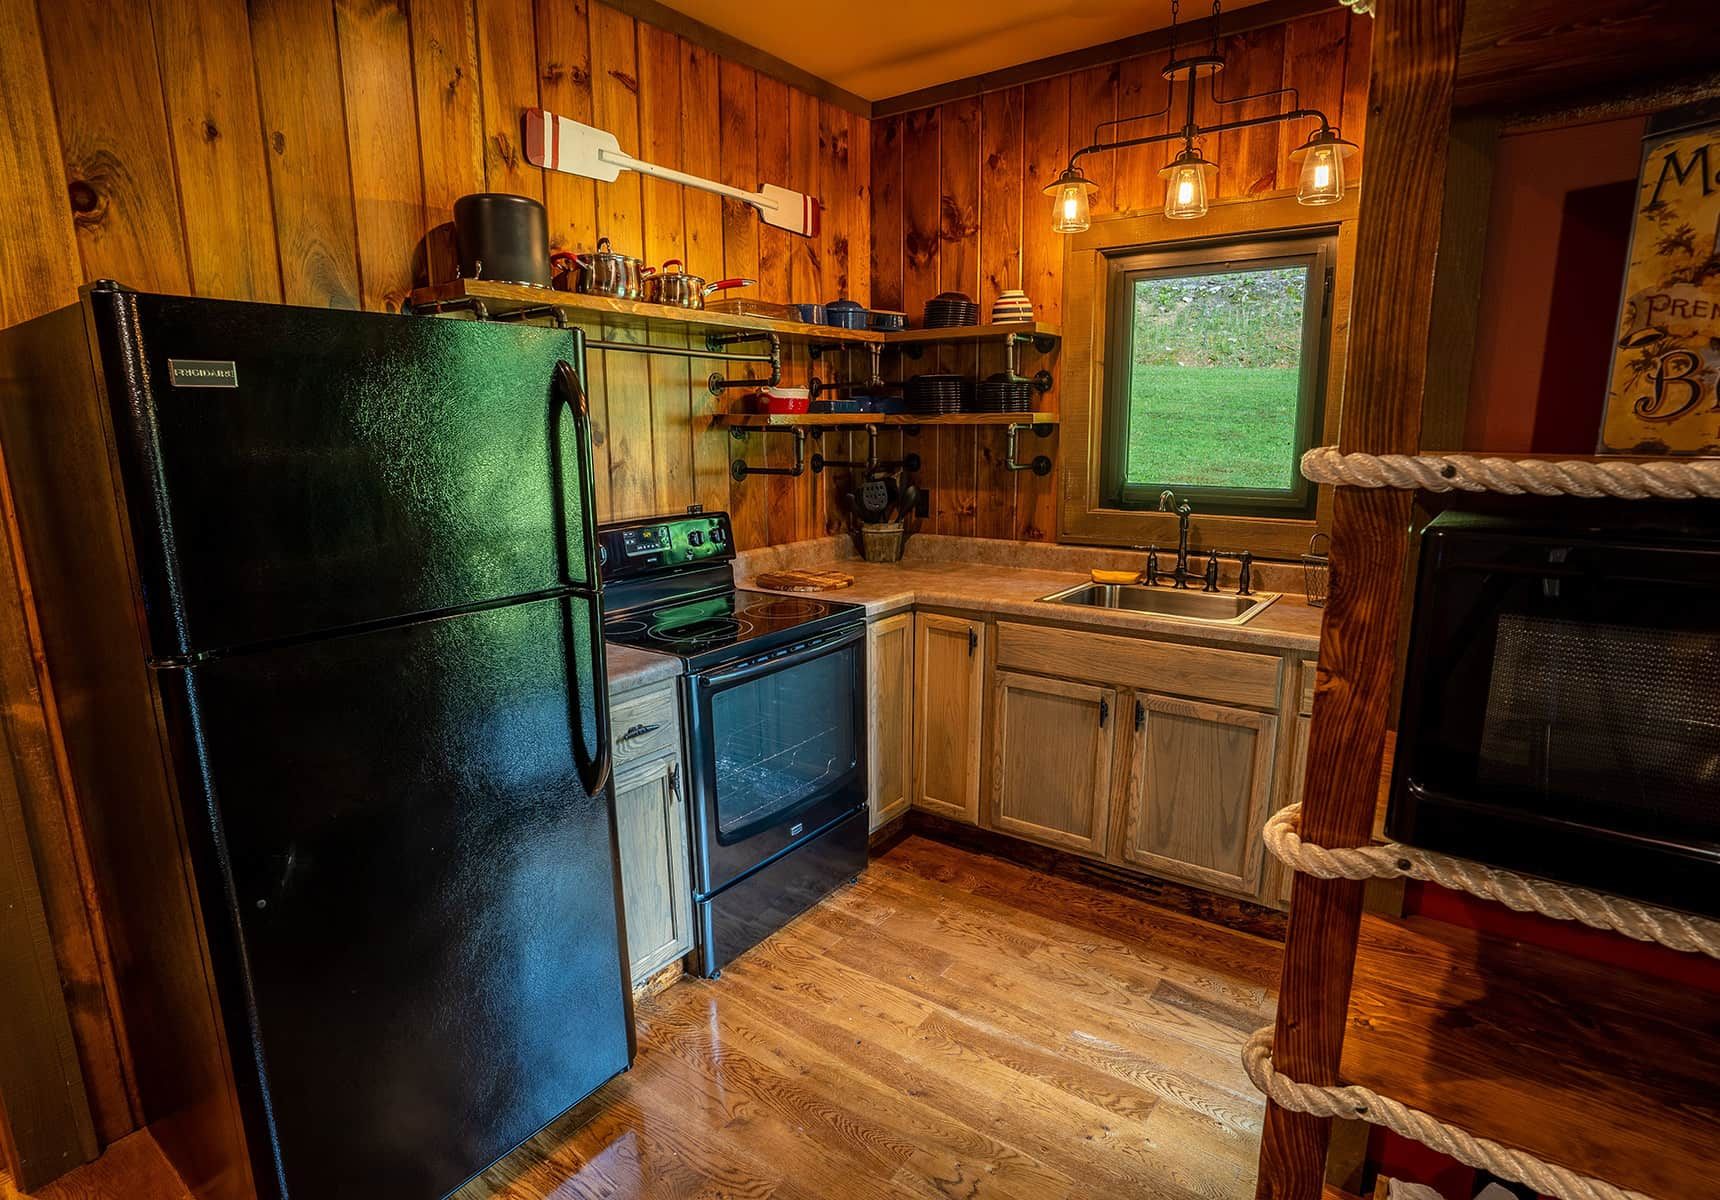 Boathouse kitchen - Hotel near Peterstown, WV